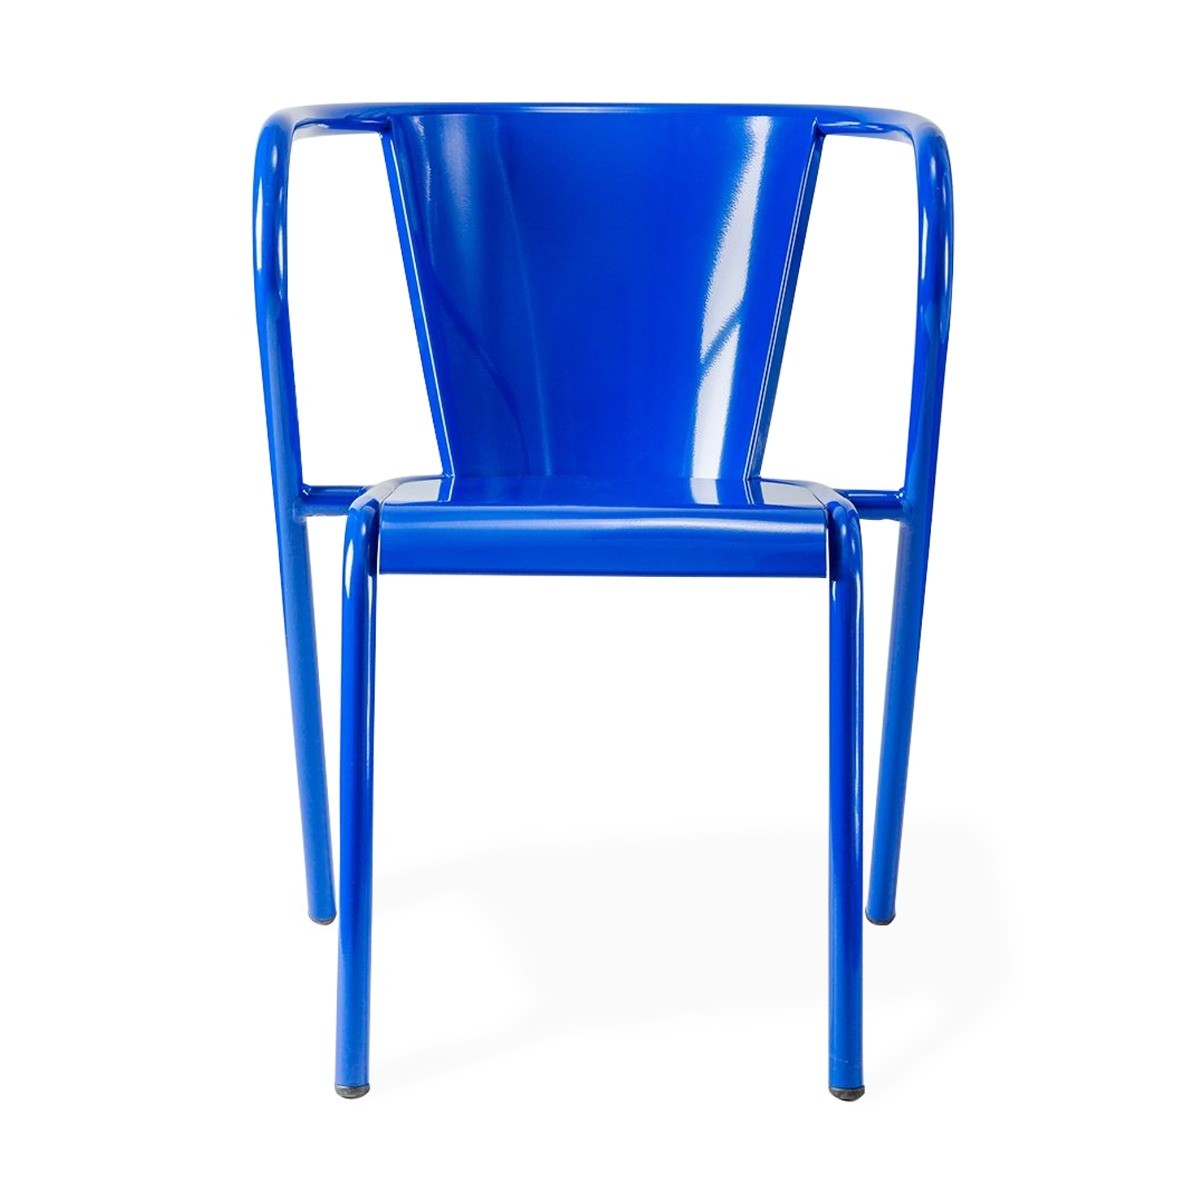 Mobilier Exterieur Macdonald Chaise 5008 Portuguesa Bleue The Conran Shop